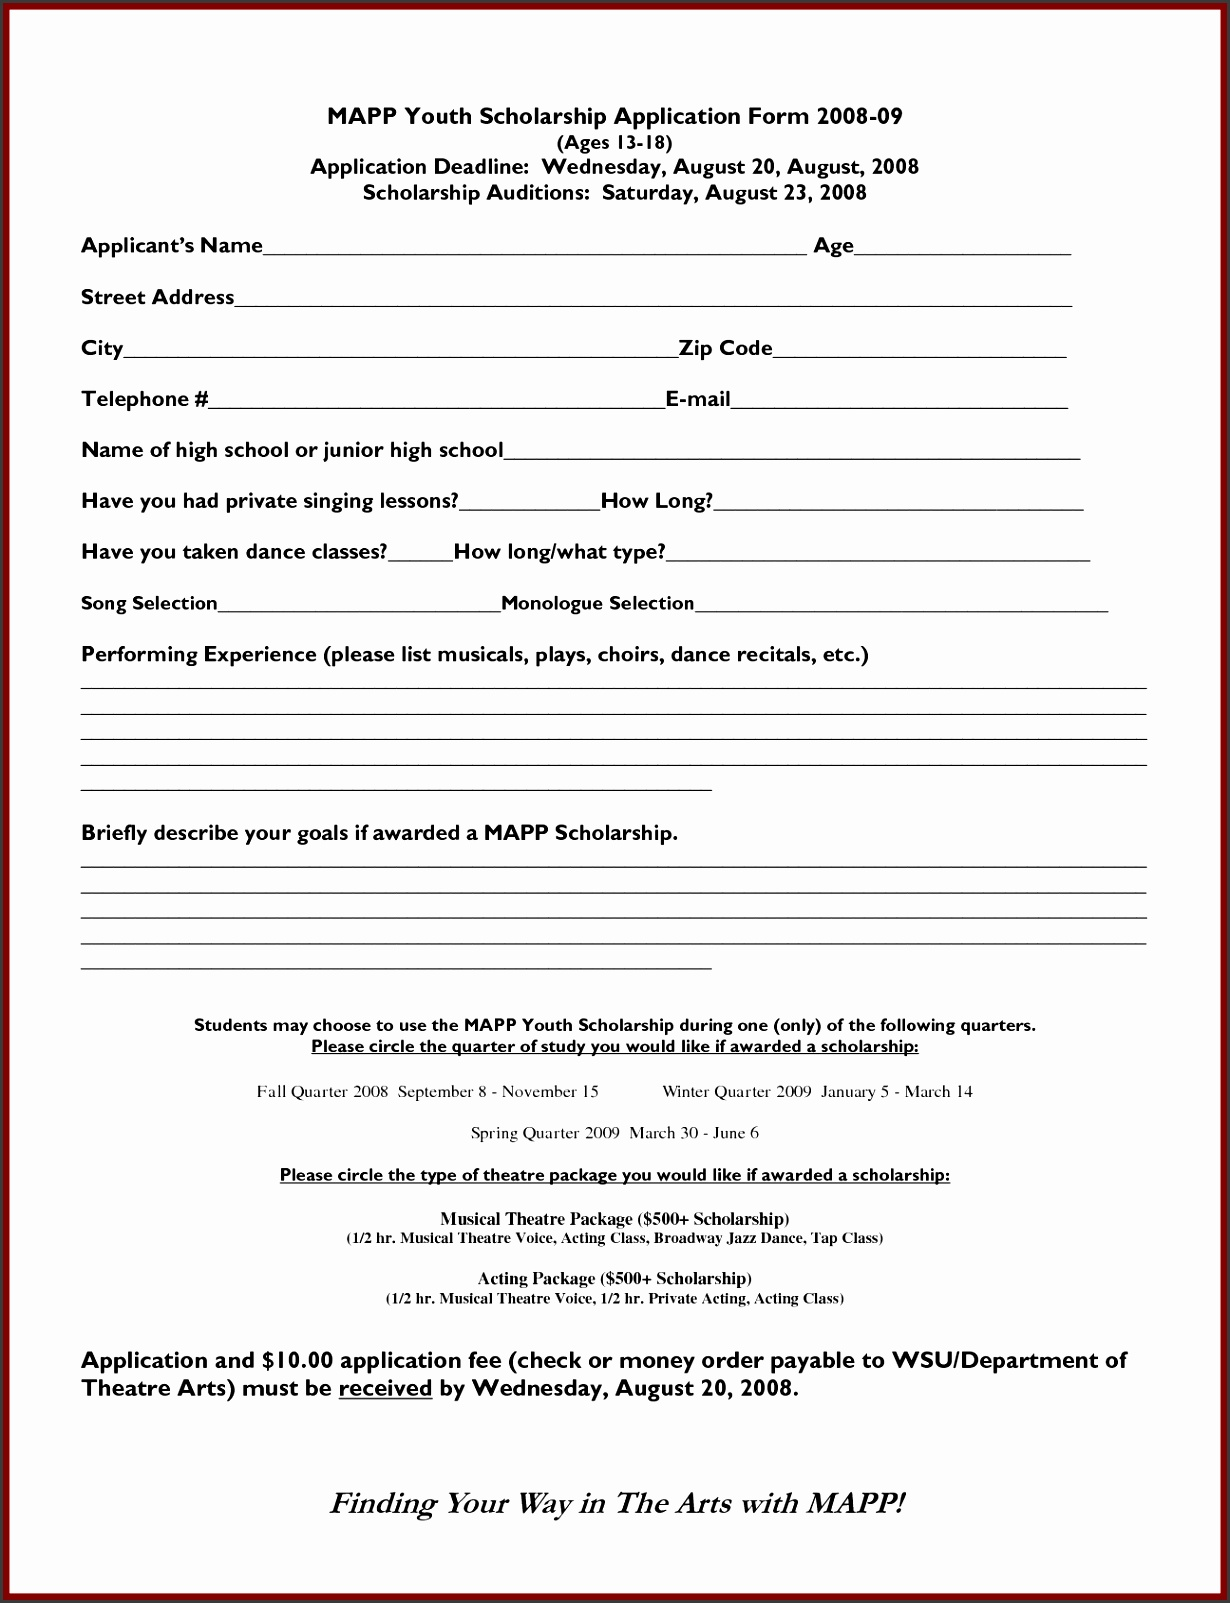 Scholarship Application Form Template MAPP Youth Scholarship Application Form 0809 by PrivateLabelArticles